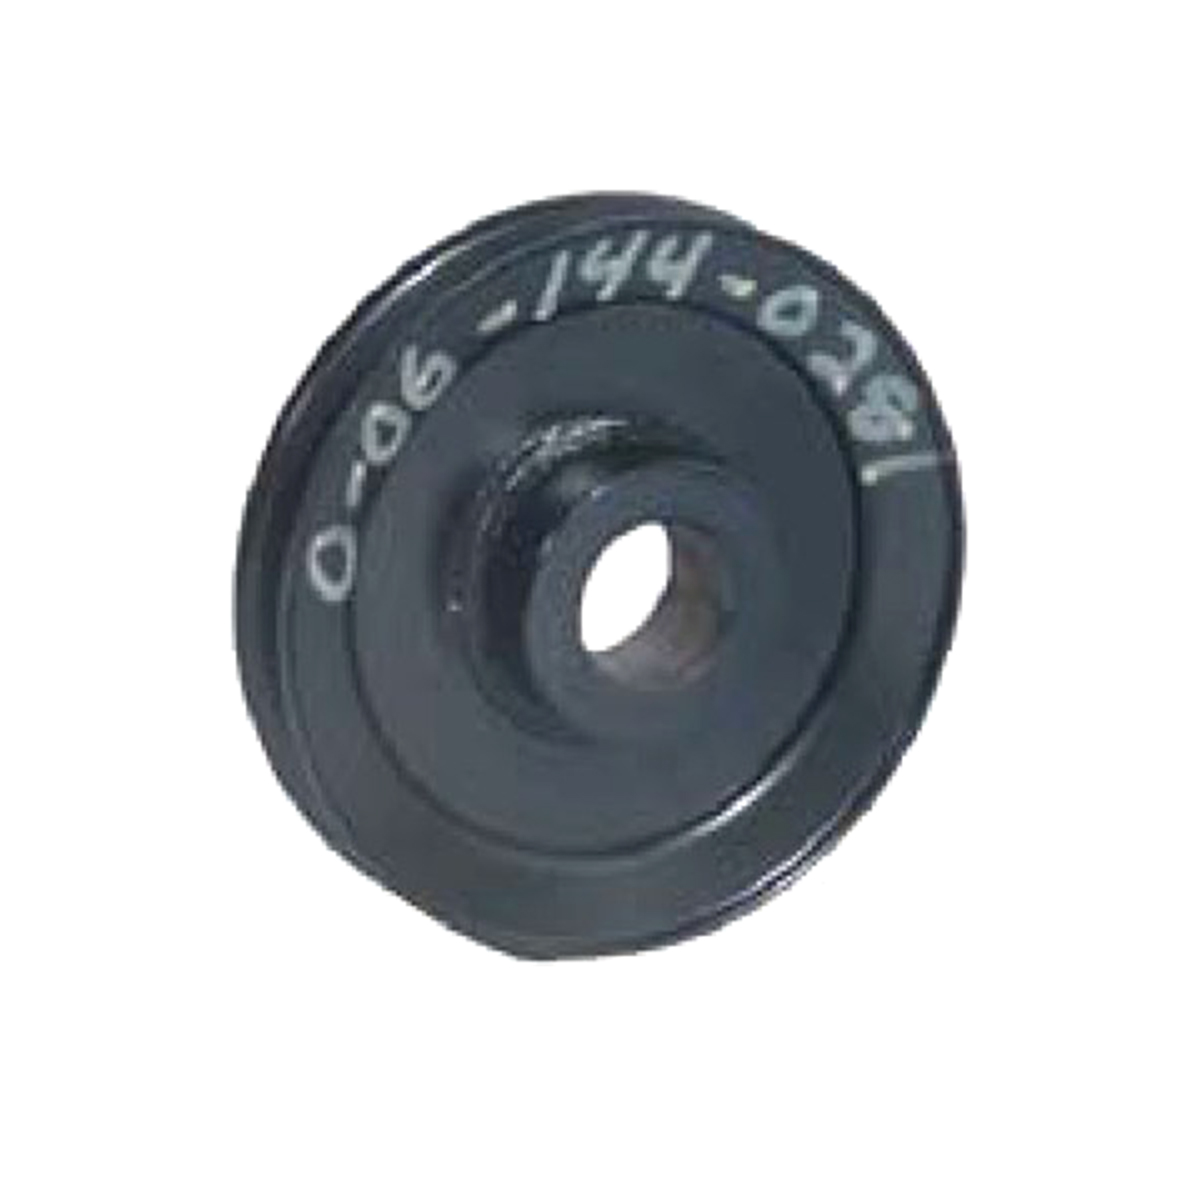 0-06-144-0281 Dixie Chopper Deck Pulley f/ Adapter Kit 4.5